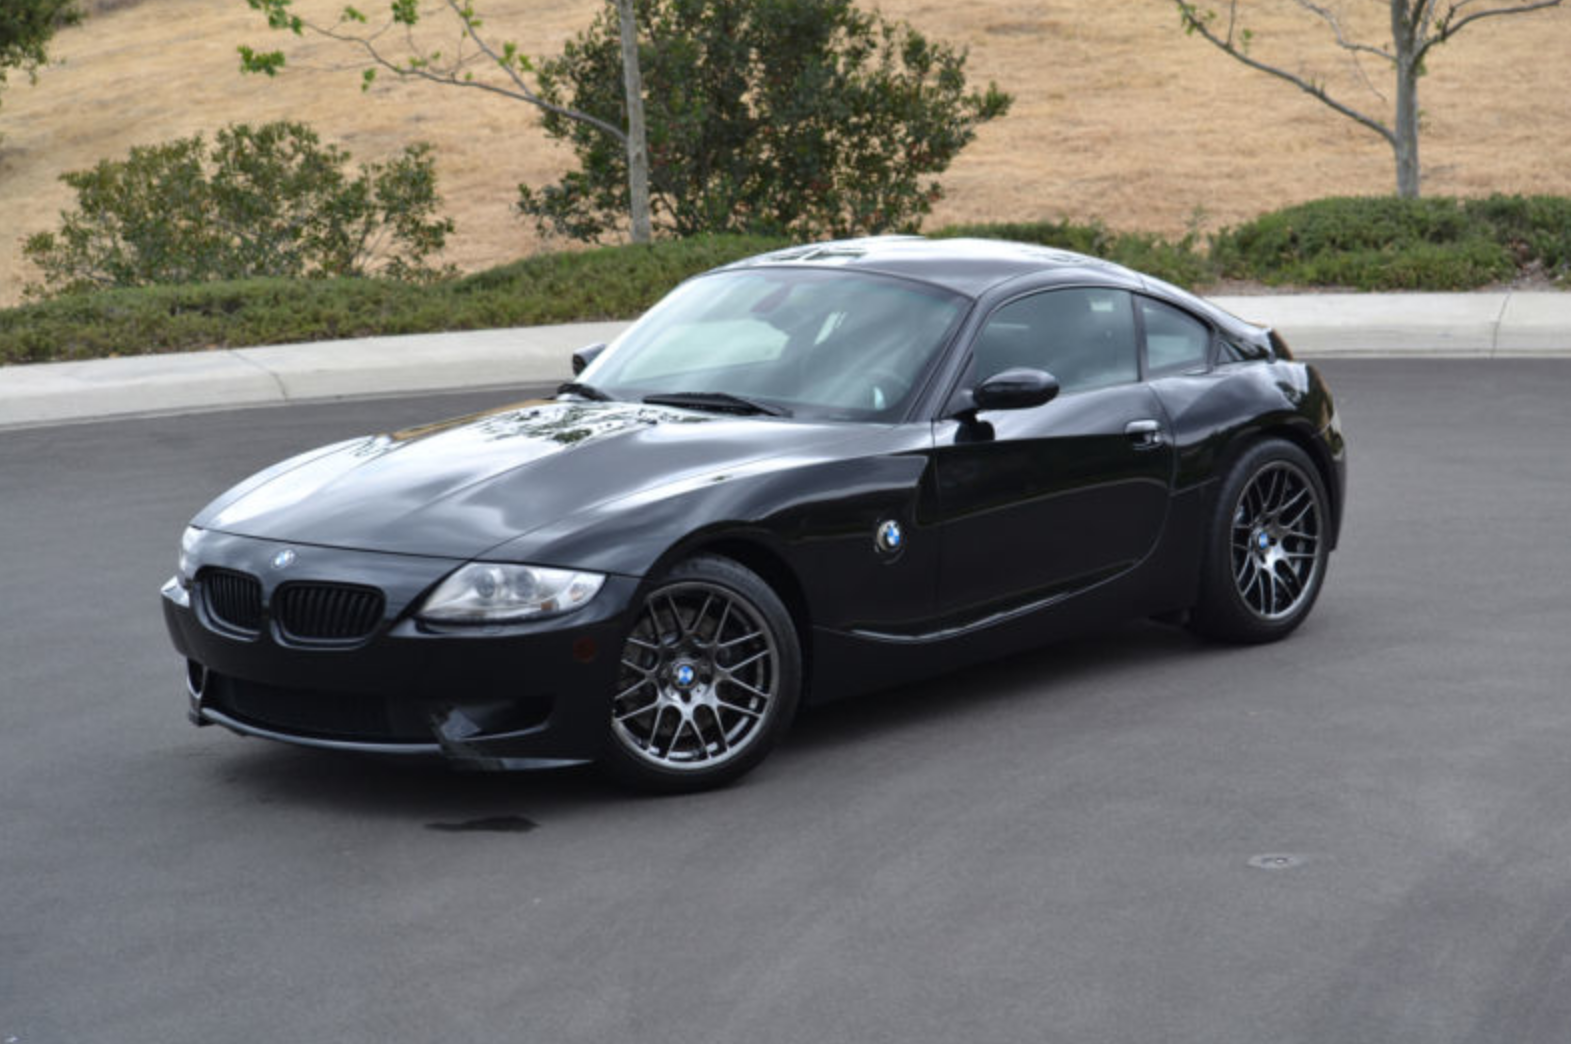 BMW bmw z4 2013 : BMW Z4 2013: Review, Amazing Pictures and Images – Look at the car